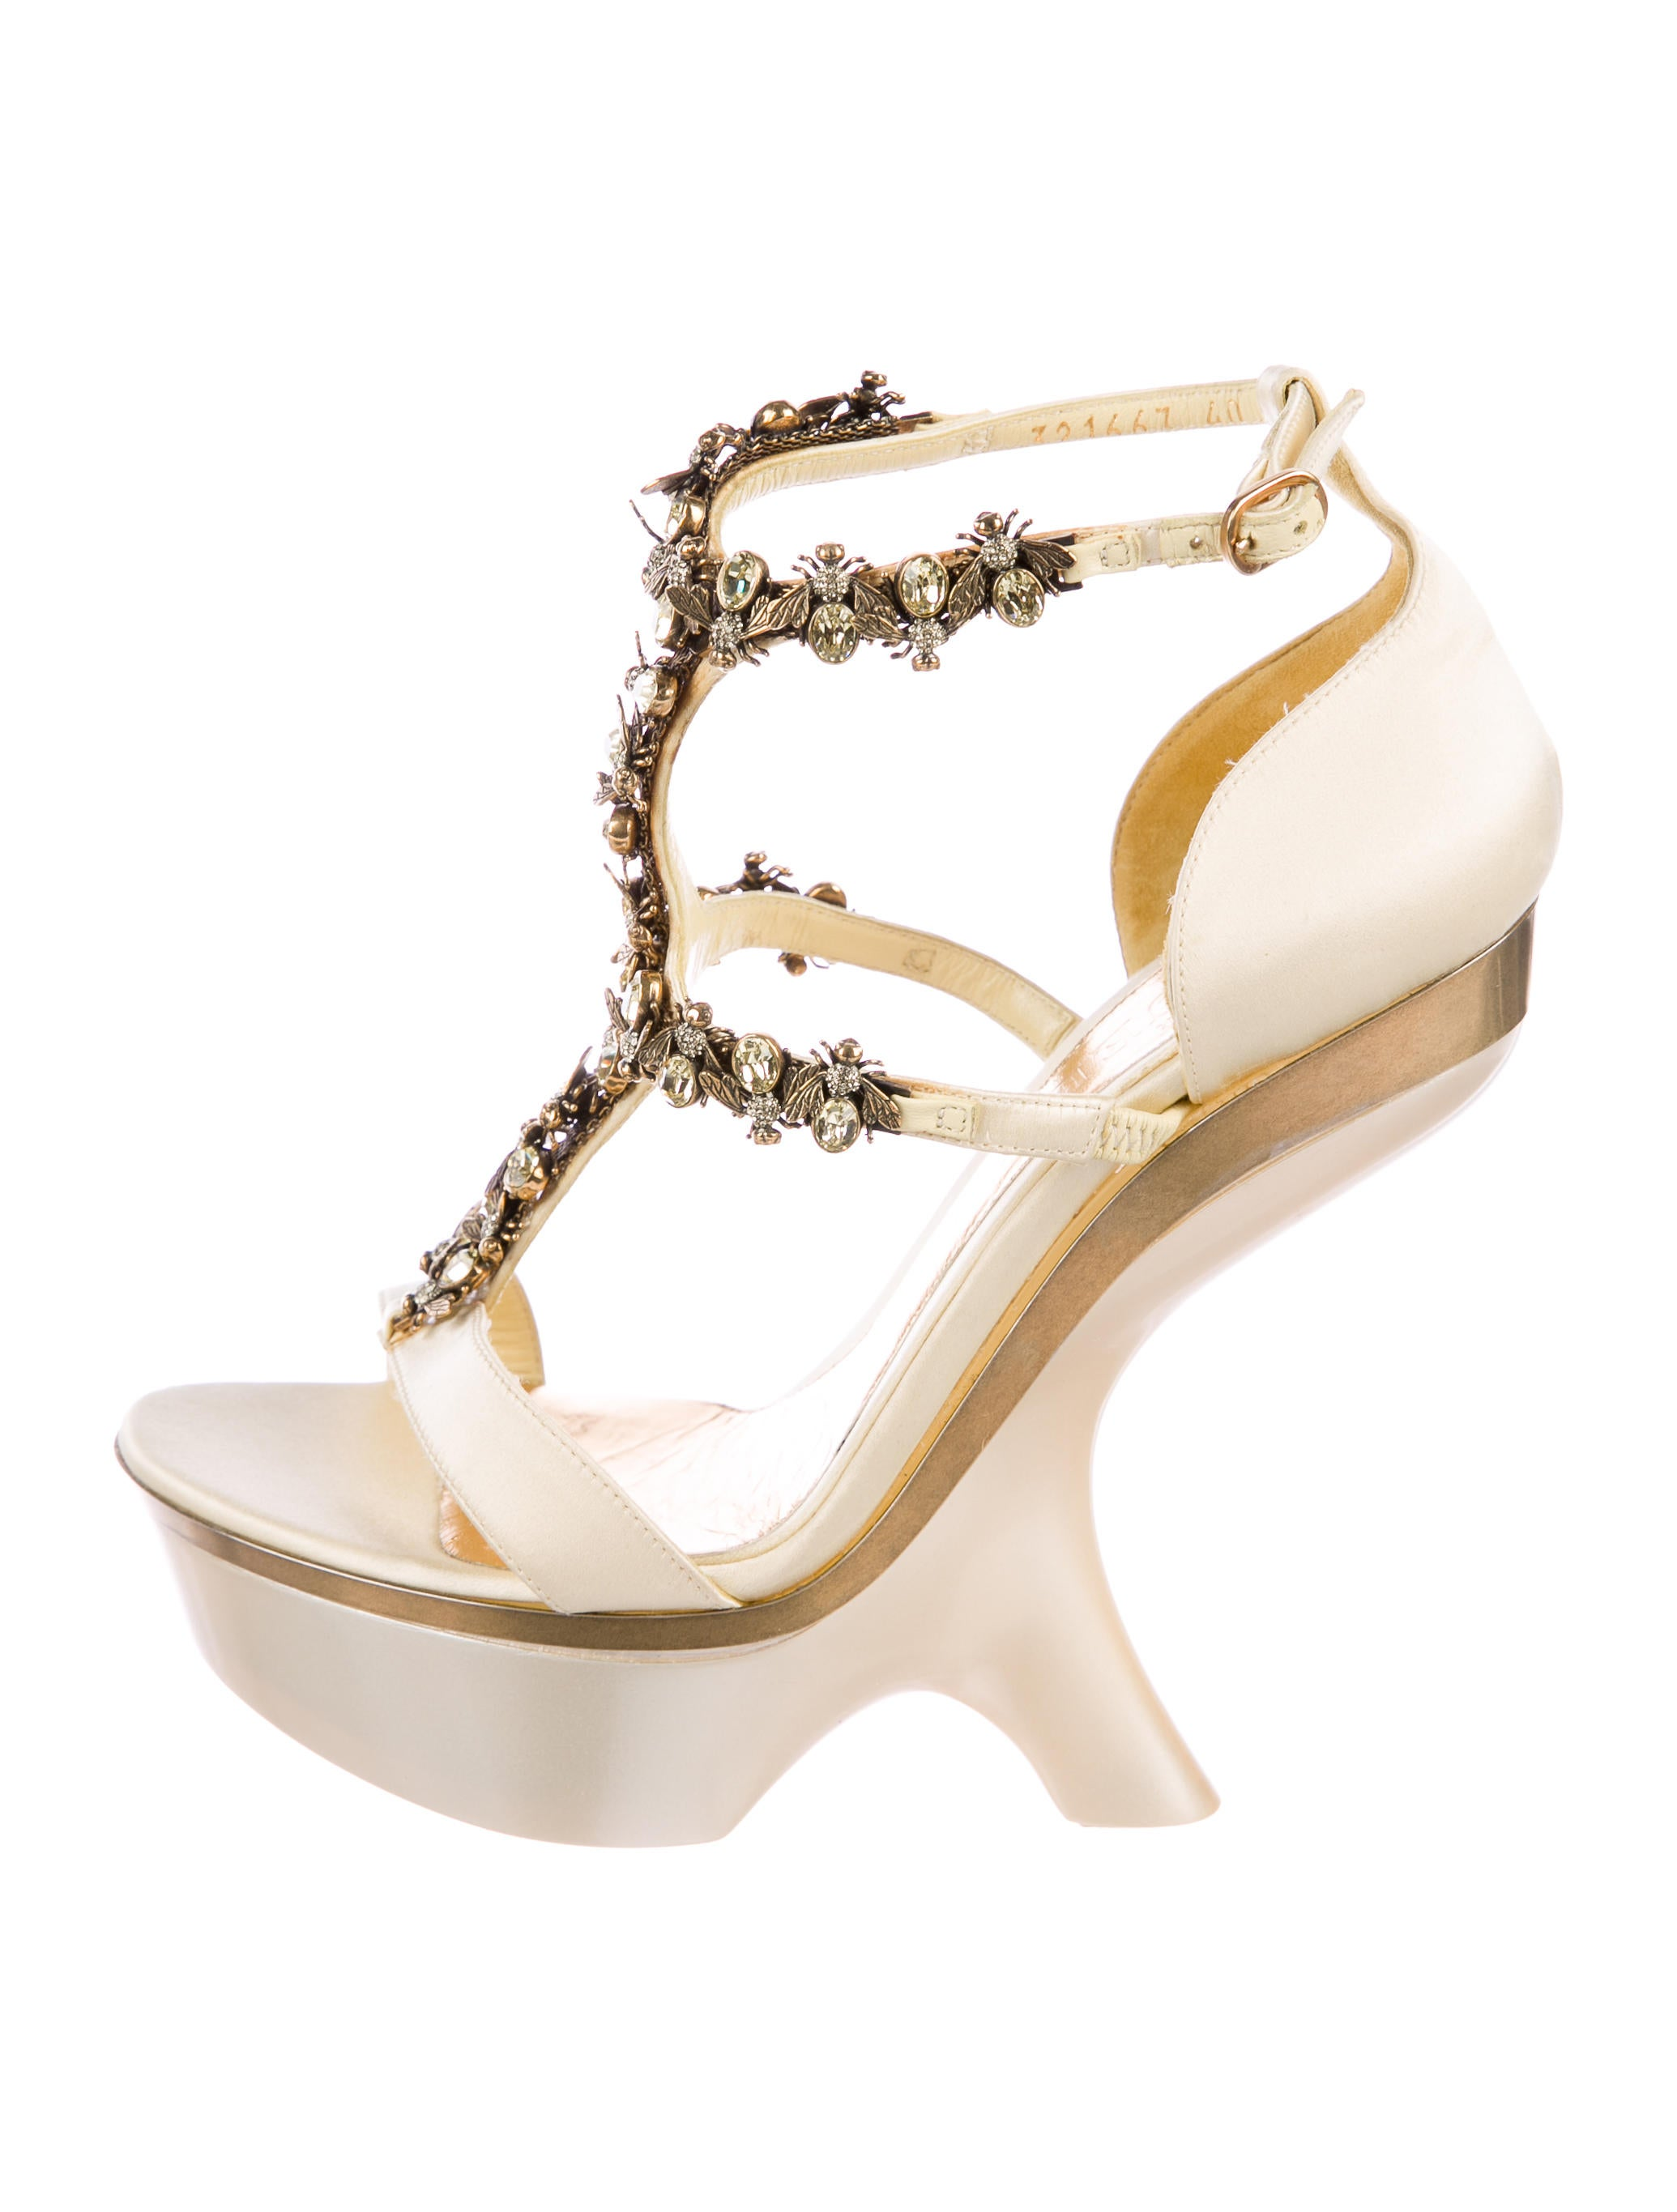 cheap with mastercard best cheap online Alexander McQueen Crystal Bee Platform Sandals with mastercard sale online clearance high quality sale sneakernews RCQFaK